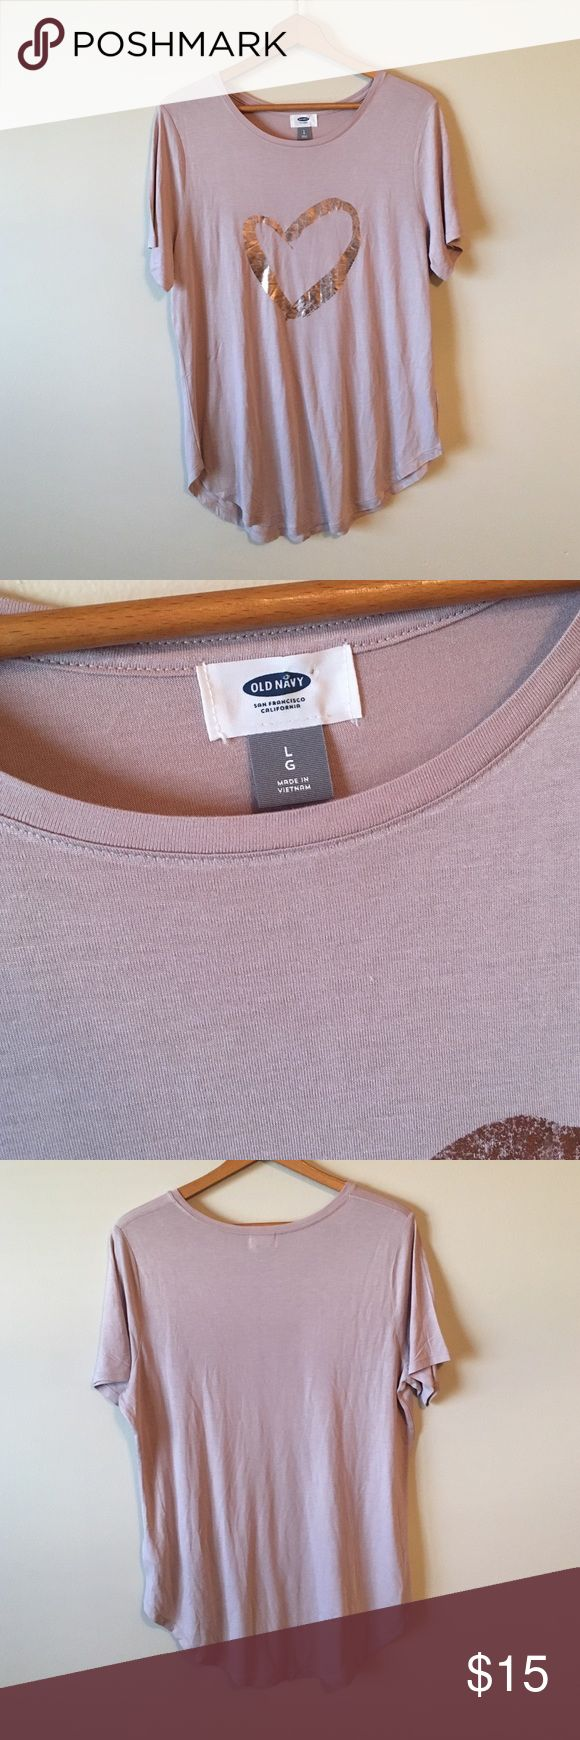 {Old Navy} Cotton Tee Lightweight cotton. Dusty pink color, size L. Tunic style. All bundles 30% off! Old Navy Tops Tees - Short Sleeve